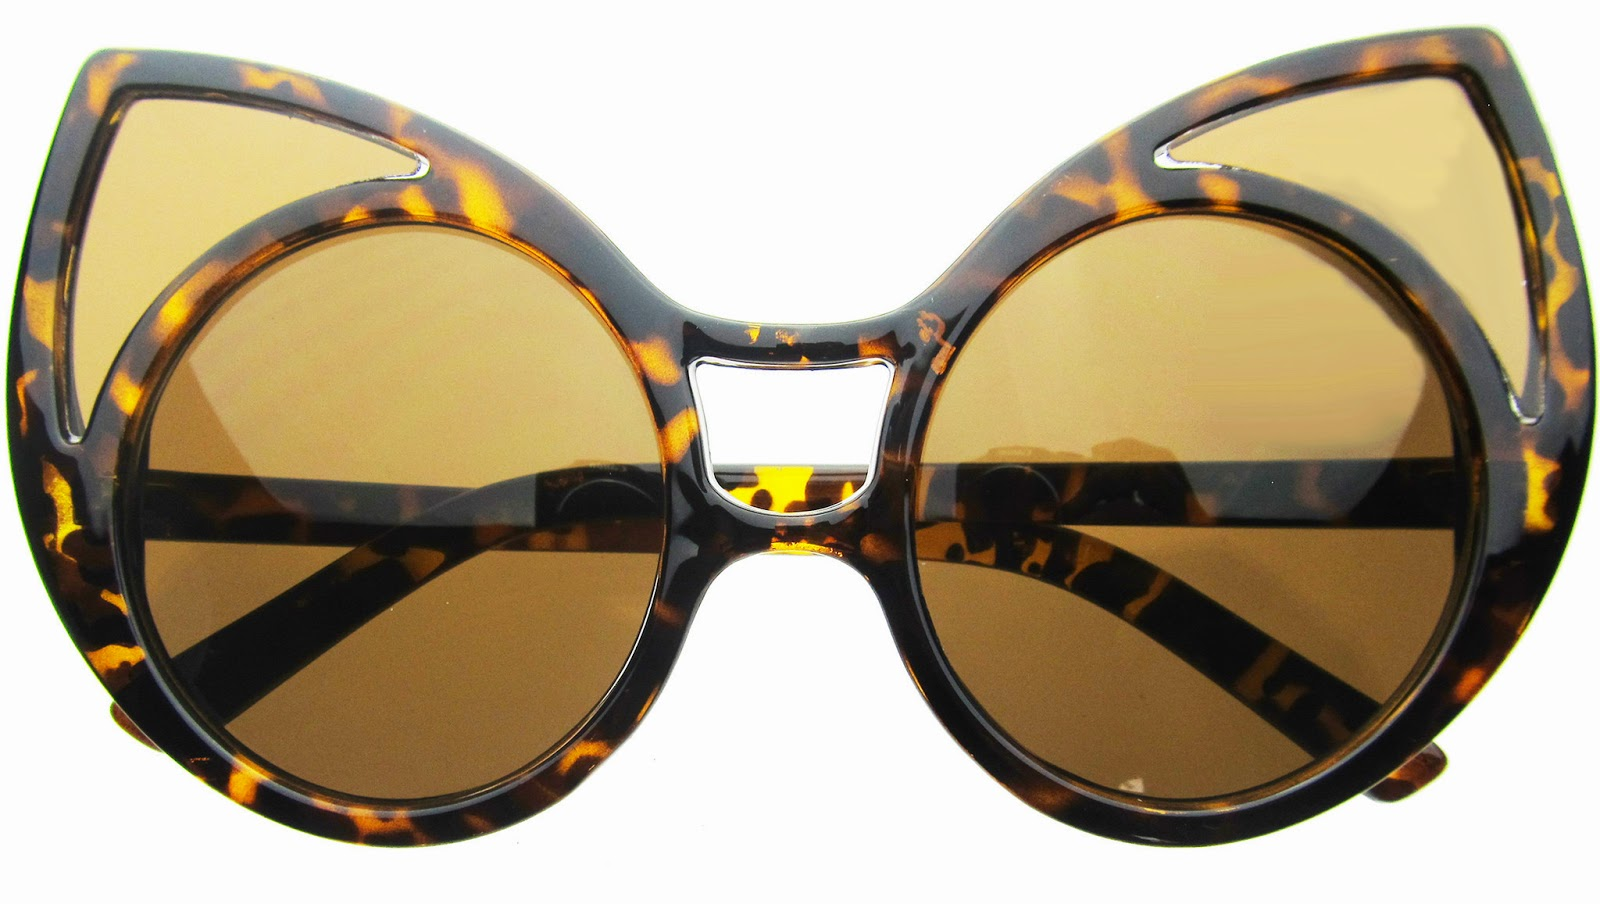 http://www.retrocitysunglasses.com/products/gretchen-cat-eye-sunglasses-in-tortoise